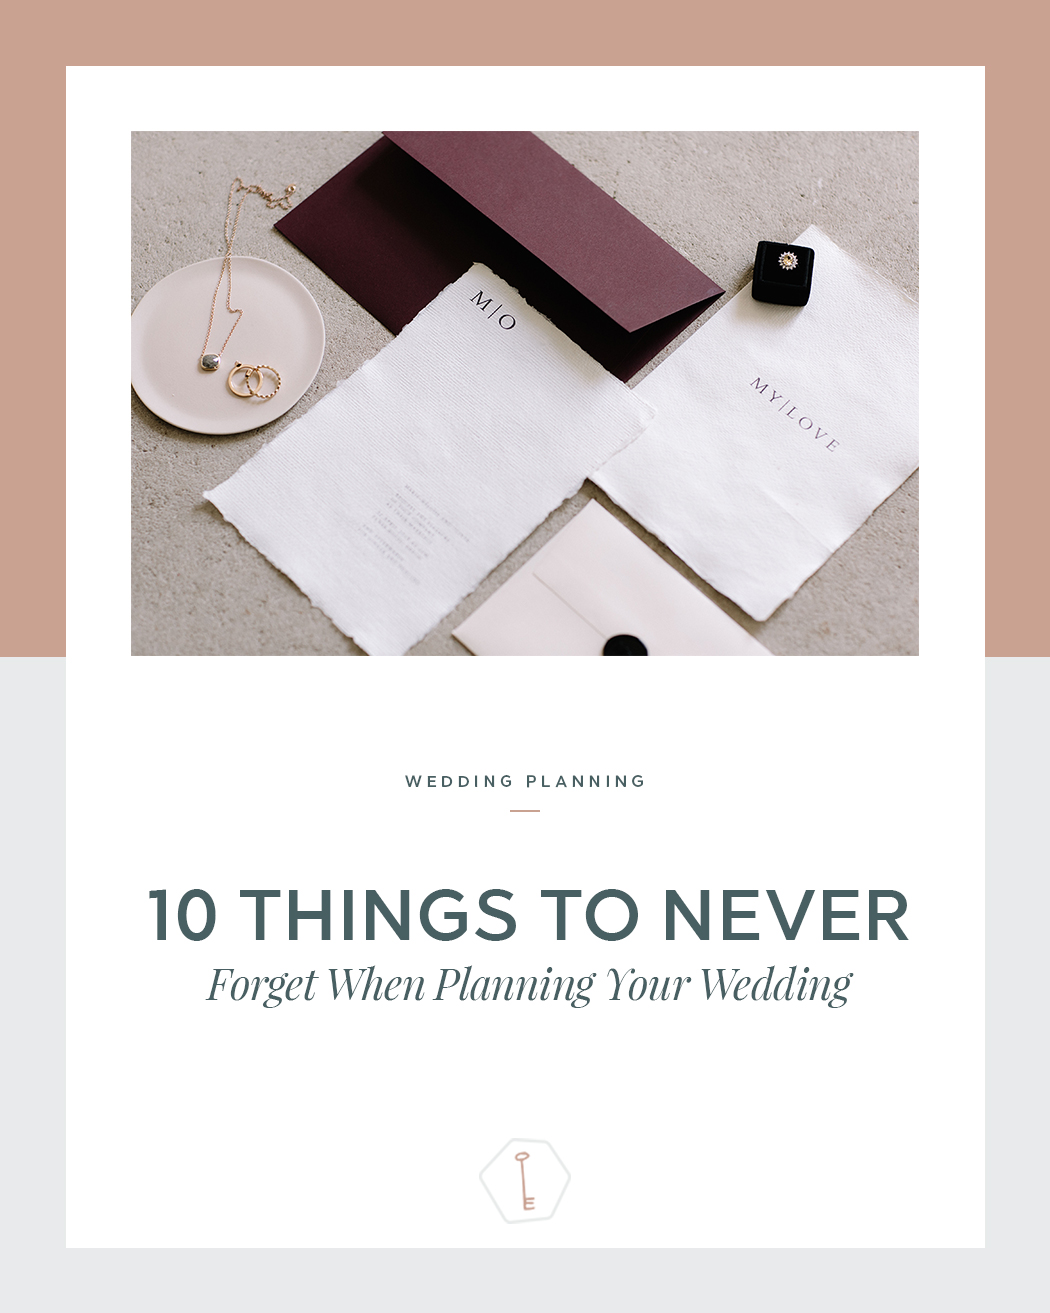 Wedding Planning Tips - 10 Things to Never Forget When You're Planning Your Wedding